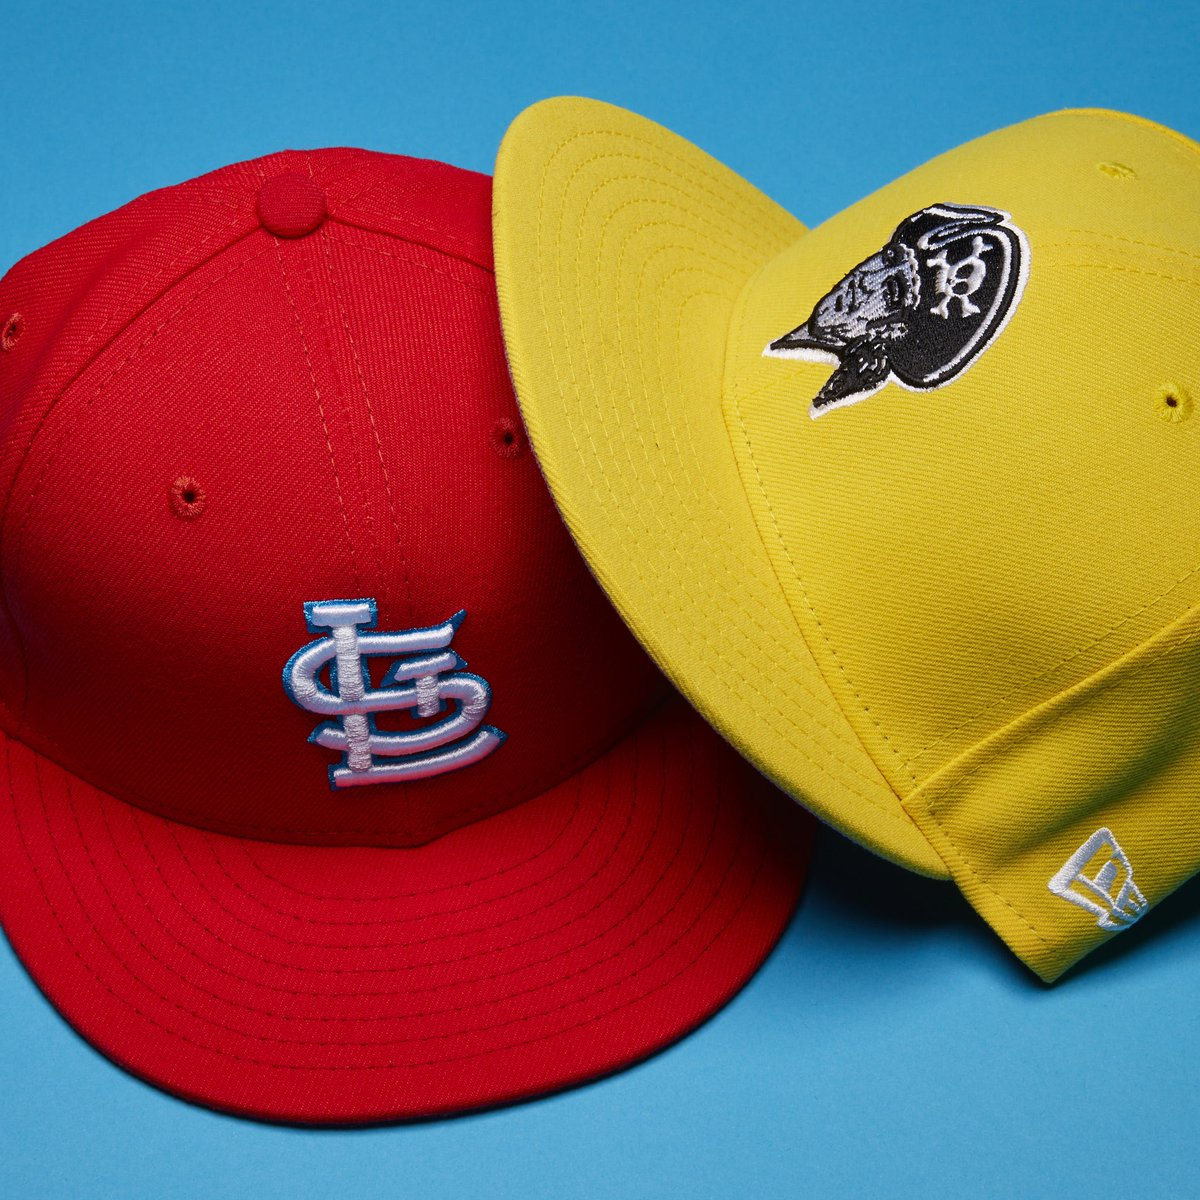 465e3ee7cb4d1 The Pirates caps were definitely a brighter shade of gold